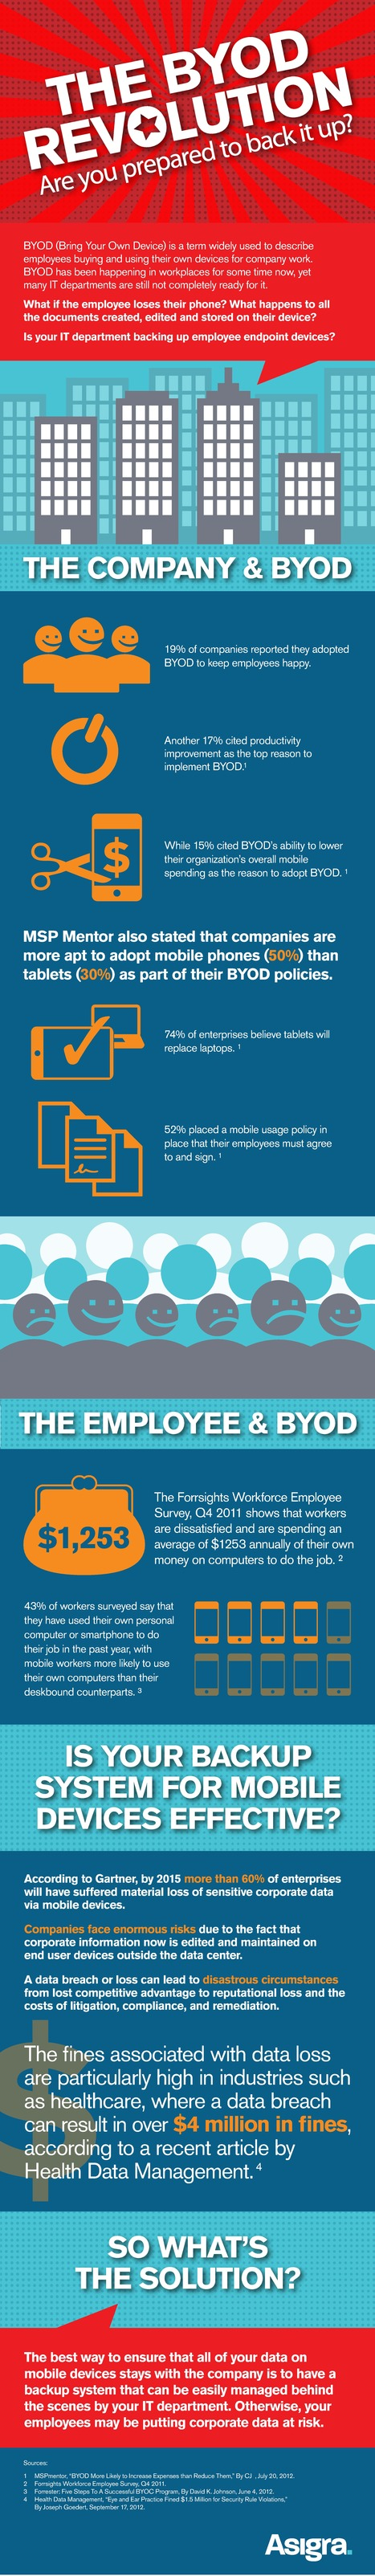 INFOGRAPHIC: The BYOD Revolution | CloudTweaks | L'Univers du Cloud Computing dans le Monde et Ailleurs | Scoop.it